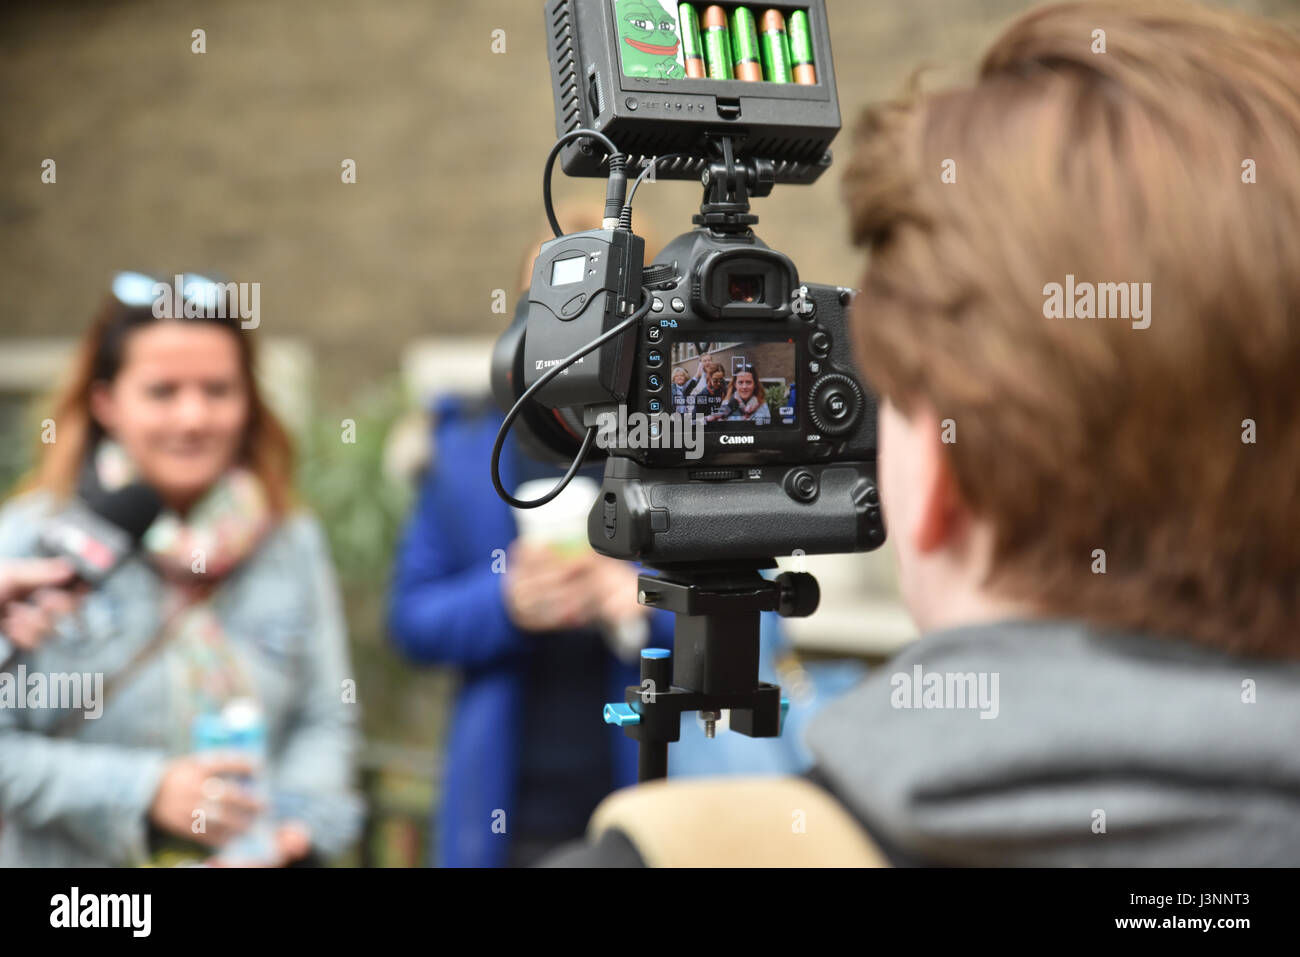 France elections 2017 live - 7th May 2017 Expatriate French People In South Kensington London Voting In The French Elections Credit Matthew Chattle Alamy Live News